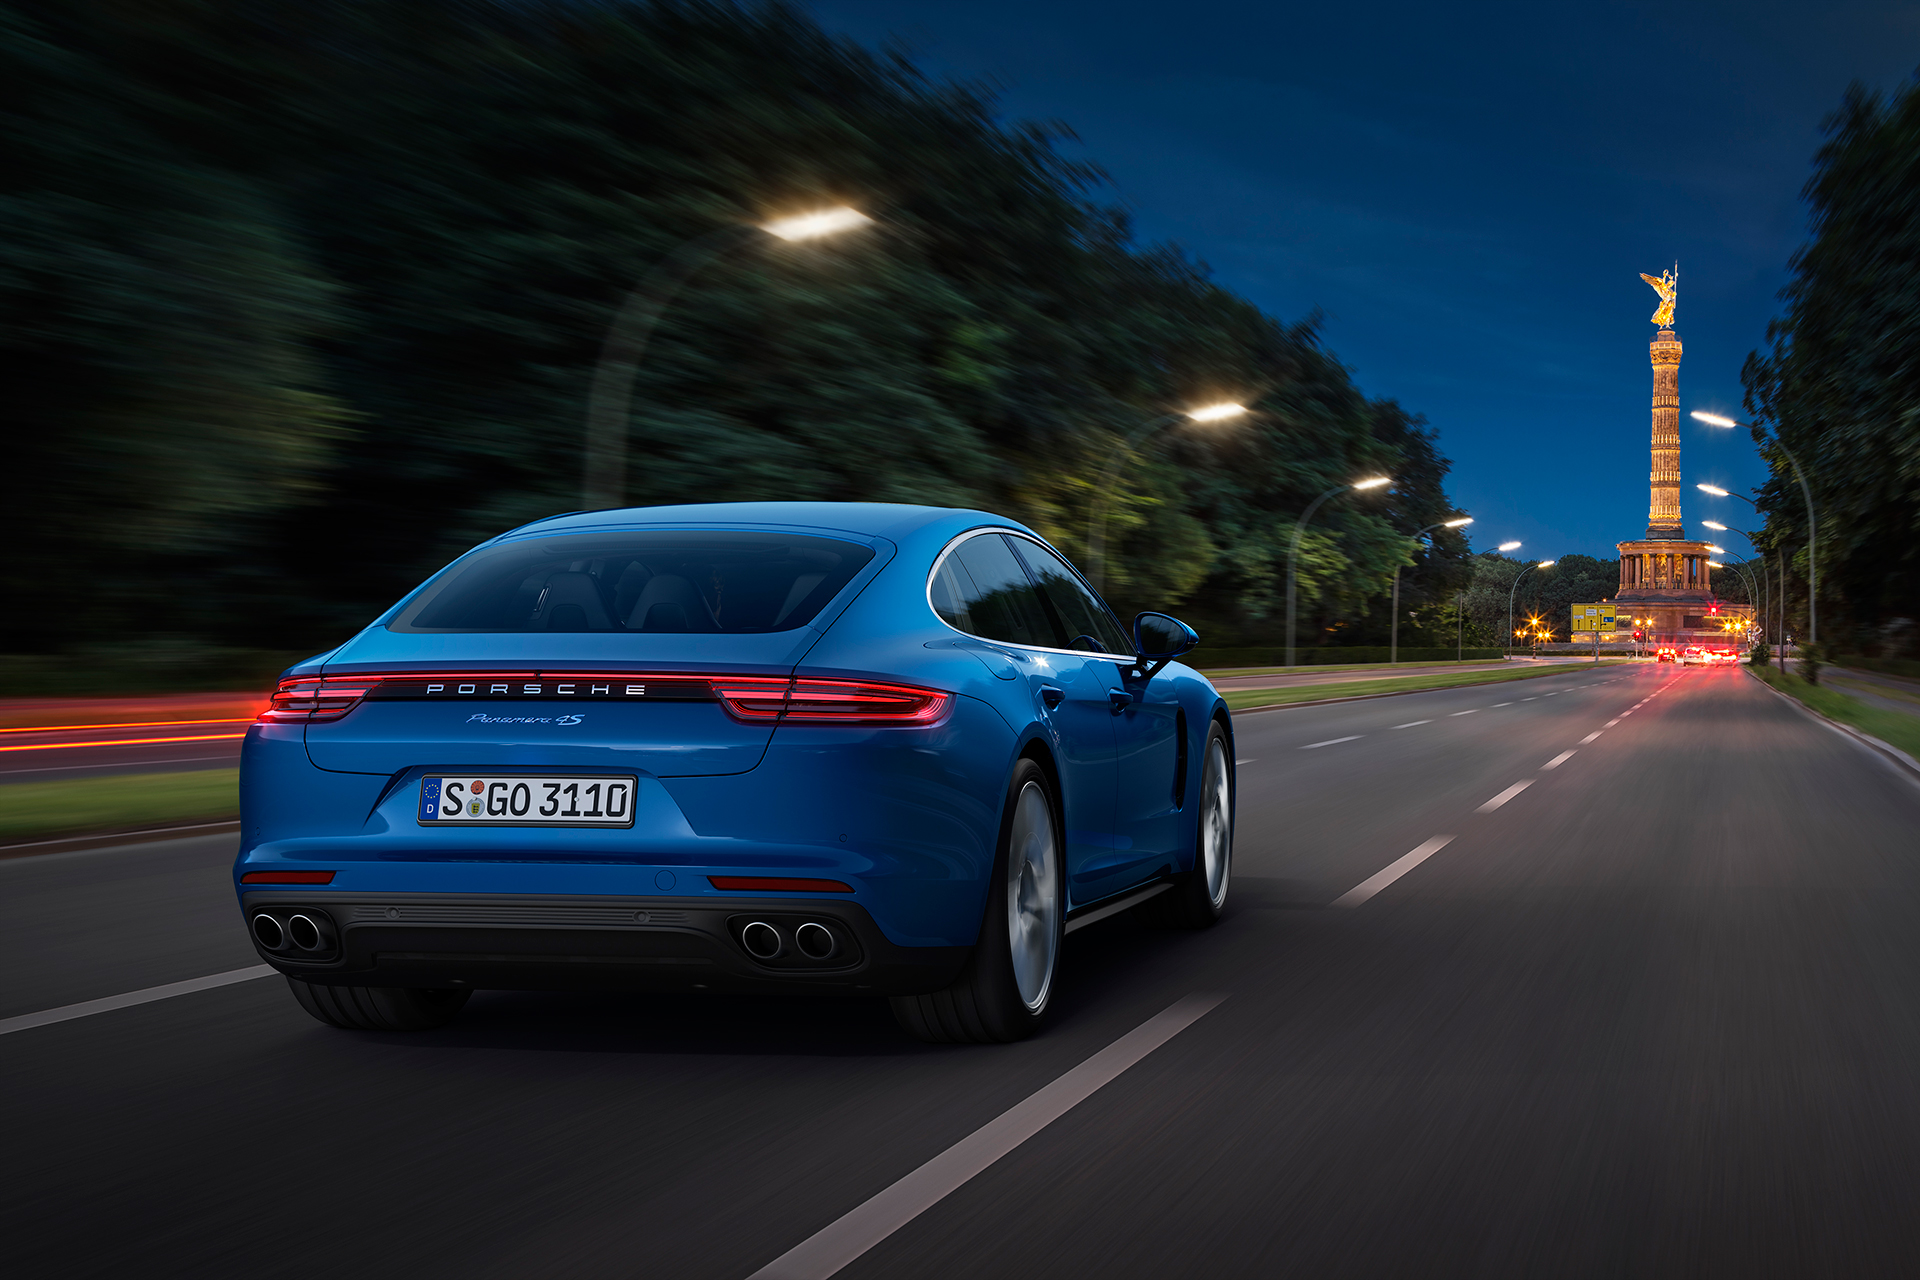 Porsche Panamera - 2016 - rear light - night photo